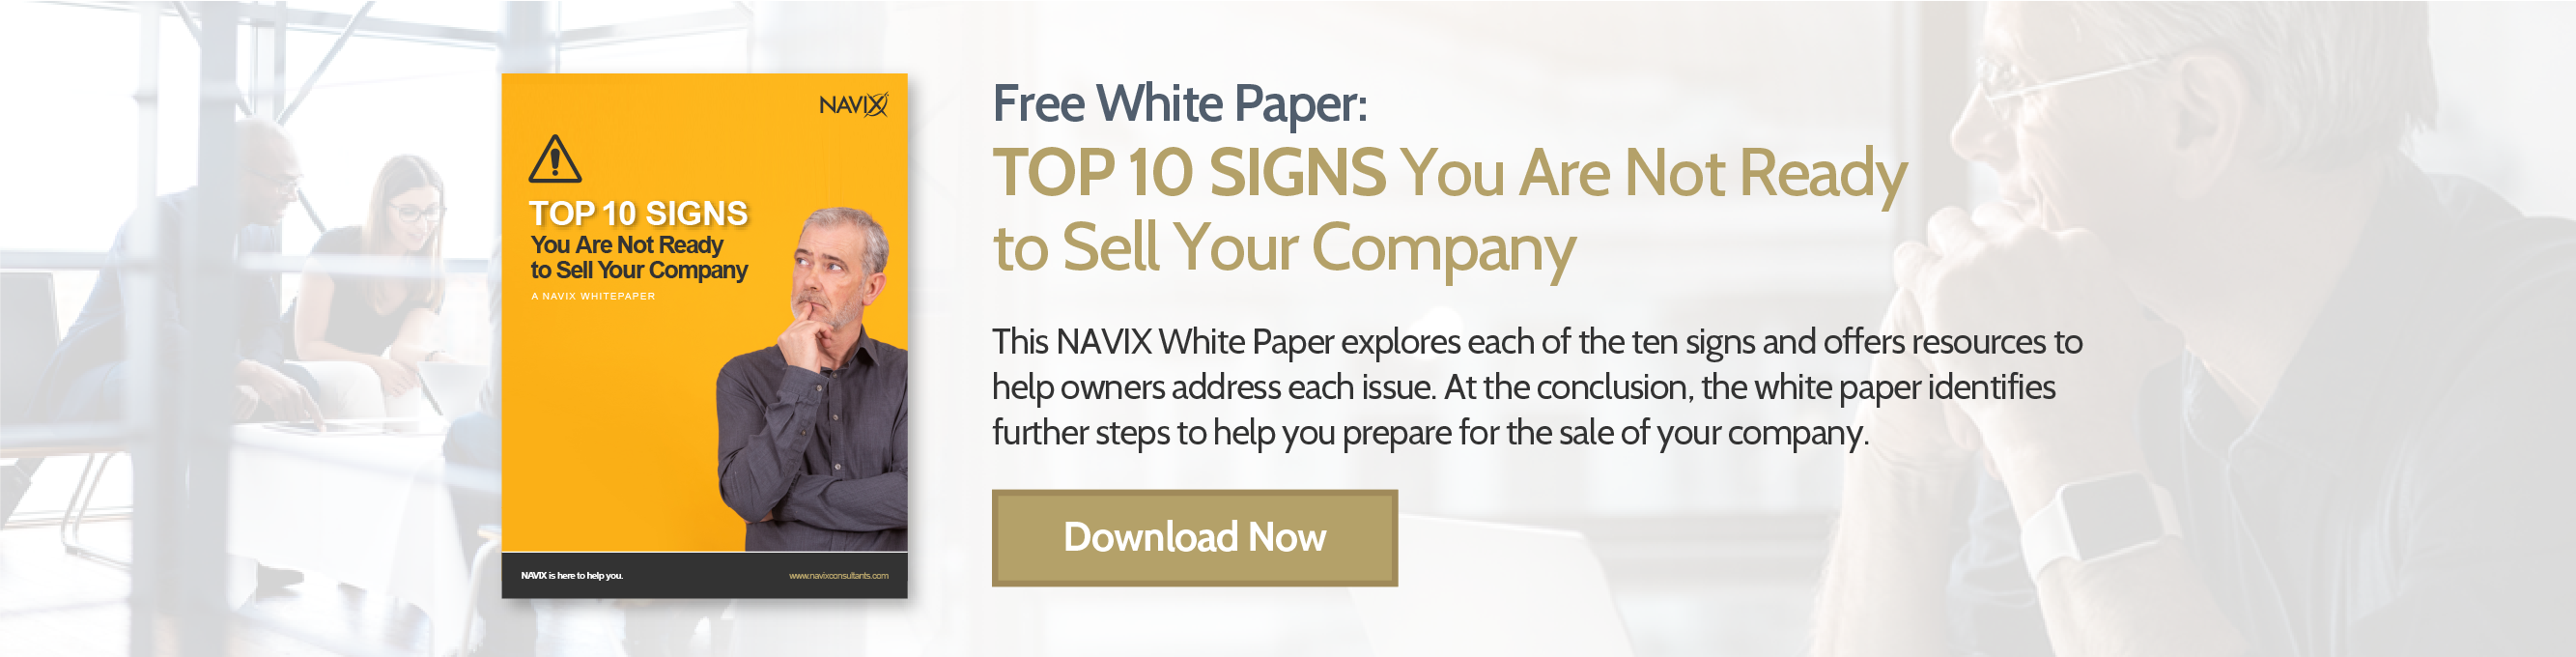 FREE White Paper: TOP 10 SIGNS You Are Not Ready to Sell Your Company